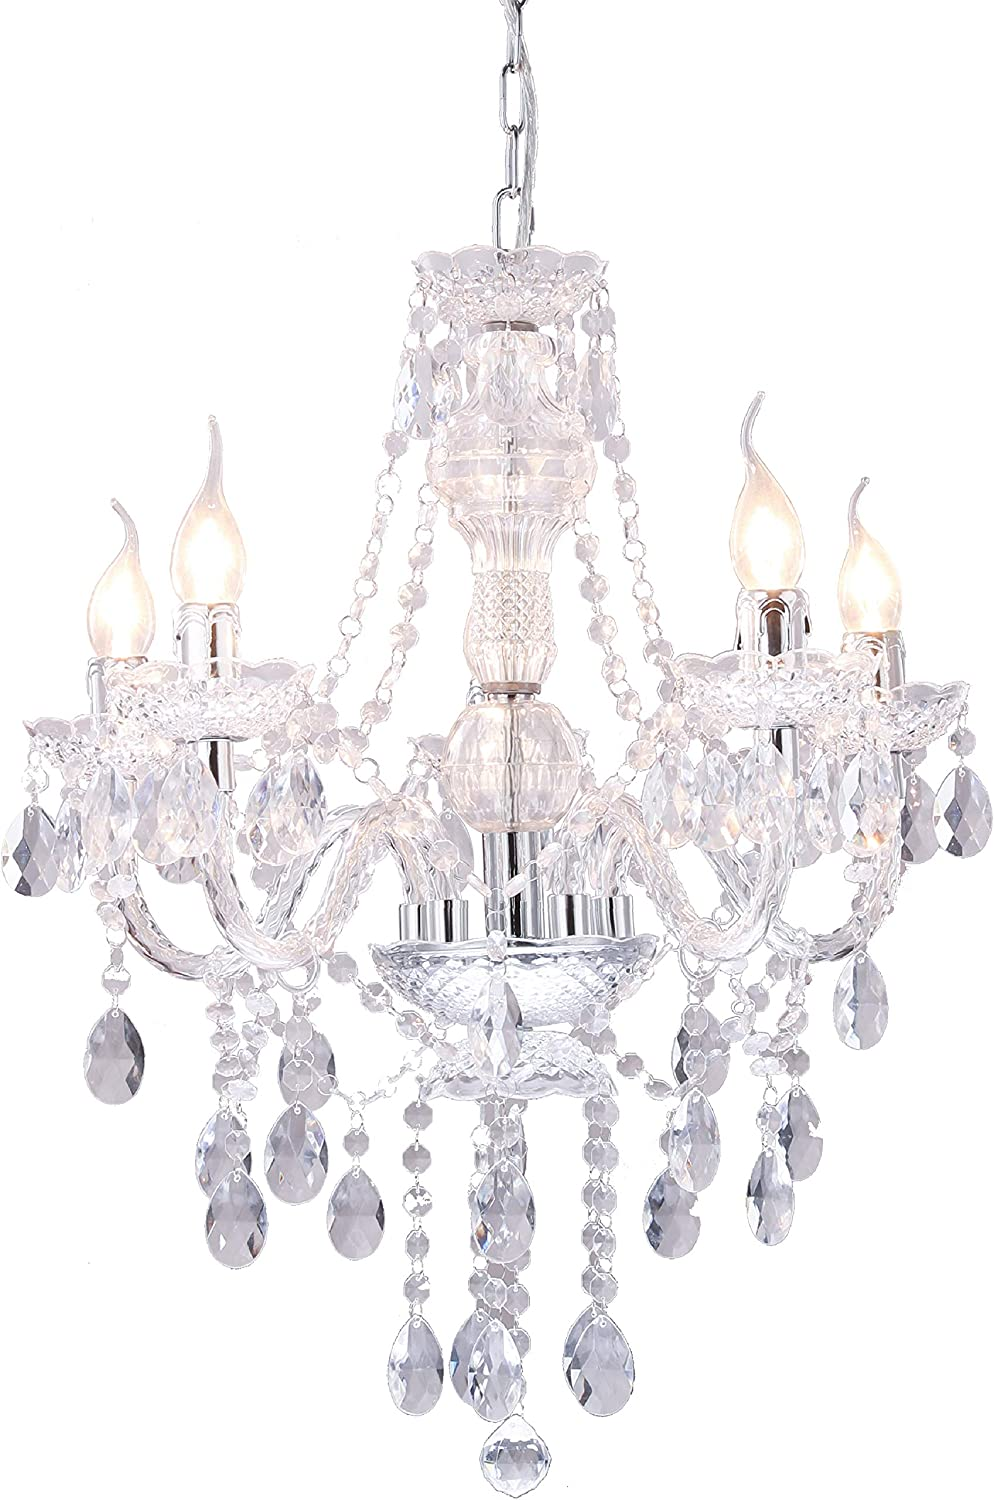 Crystal Chandeliers Modern White Light Fixtures Ceiling Chandelier with Acrylic 5-Lights Clear Flush Mount Ceiling Lighting for Dining Room, Kids Rooms, Bedroom,Girls Room,Reading Room…